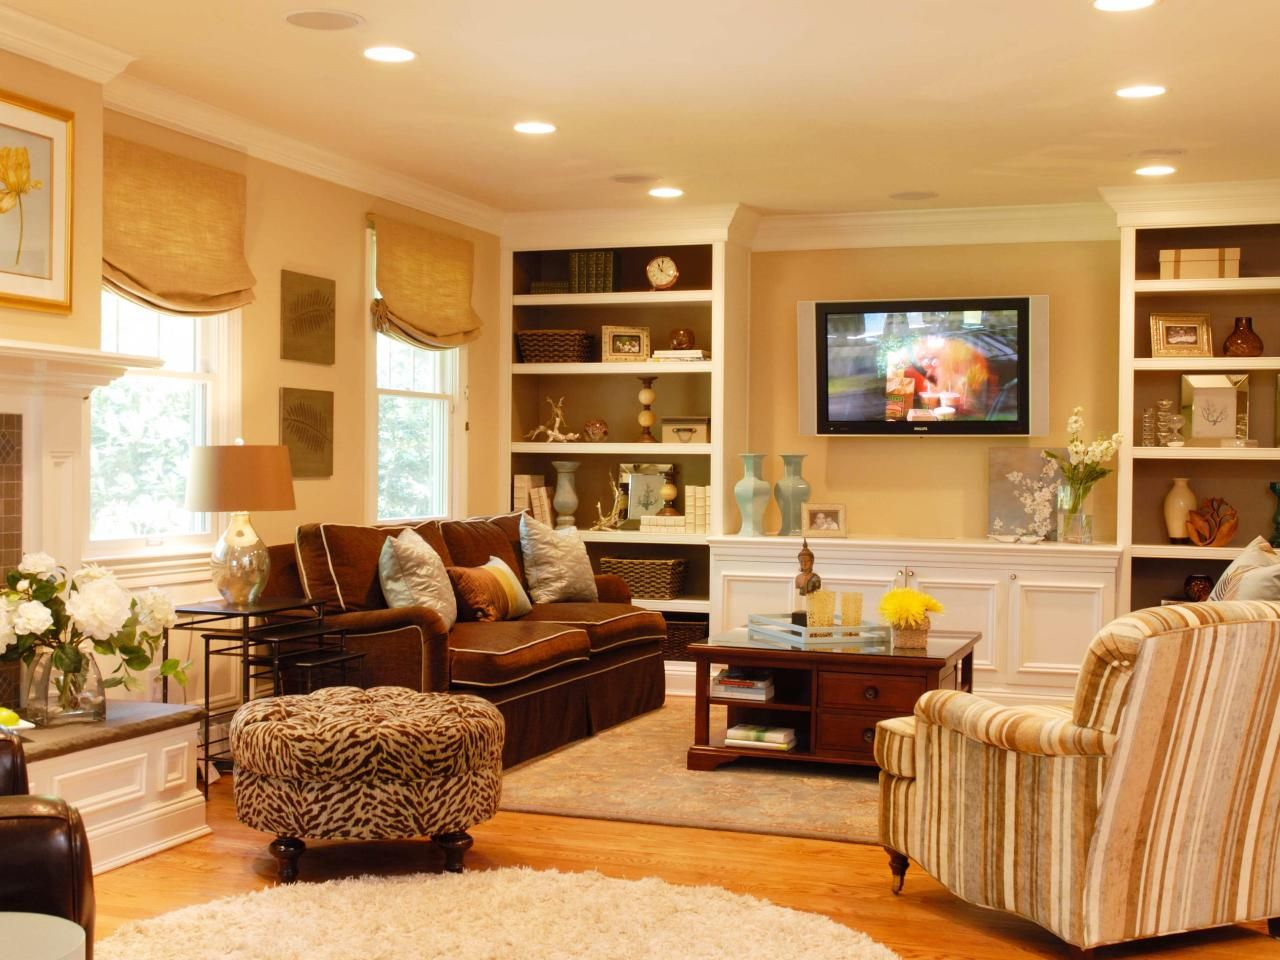 Built in cabinets contemporary living room lucy and company - A Built In Bookcase Is A Great Focal Element To Any Space In This Transitional Living Room Two Built In Units Flank The Wall Mounted Tv